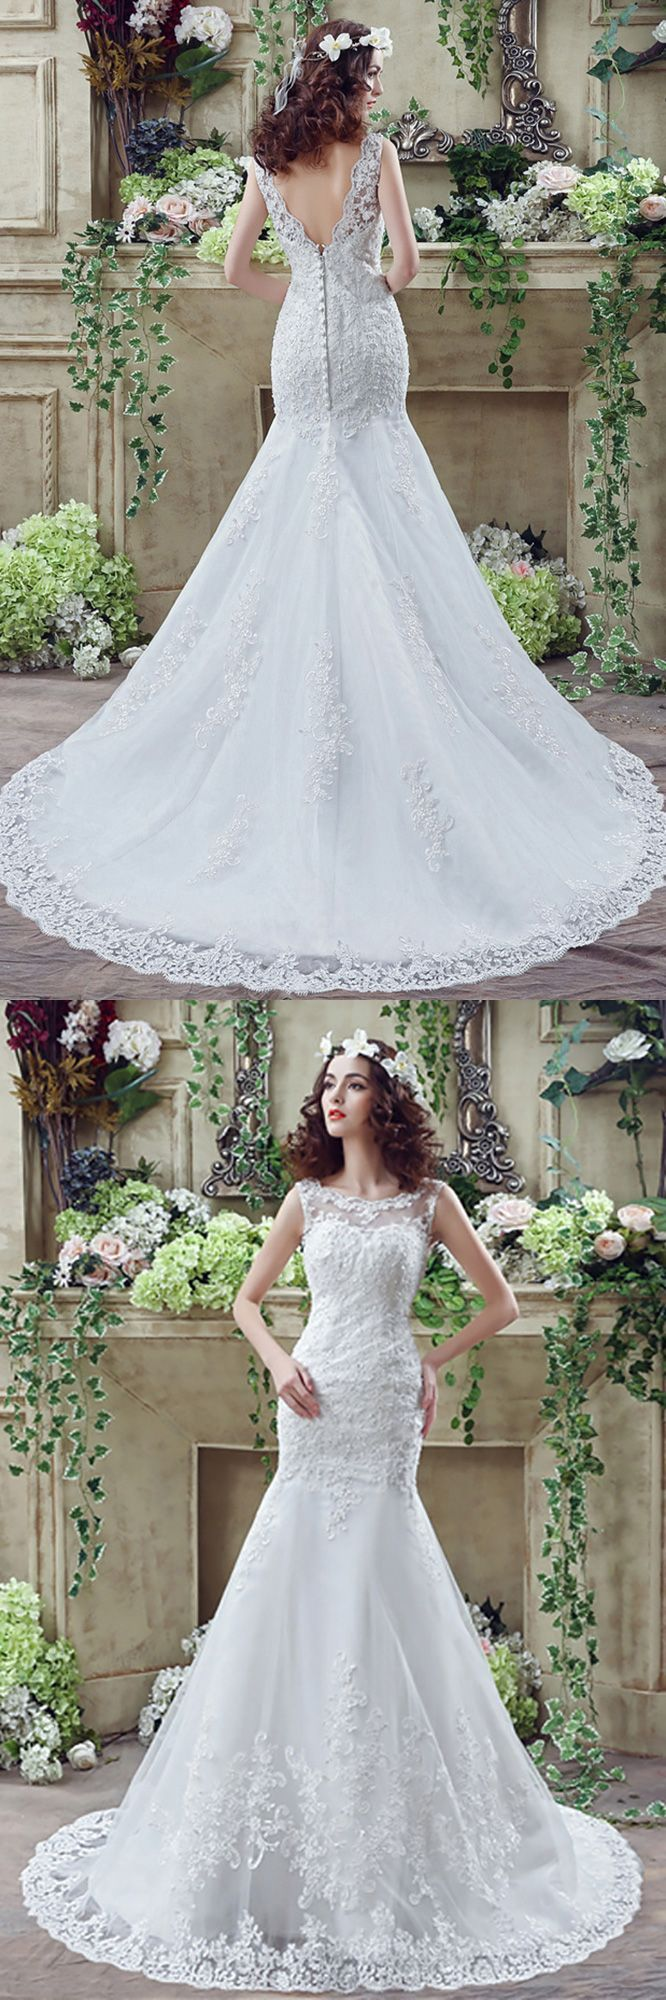 Only $128.99, Lace Wedding Dresses Fit And Flare Curvy Lace Wedding Dress Summer With Low Buttons Back #H76016 at #GemGrace. View more special Wedding Dresses,Mermaid Wedding Dresses,Lace Wedding Dresses,Country Wedding Dresses now? GemGrace is a solution for those who want to buy delicate gowns with affordable prices, a solution for those who have unique ideas about their gowns. Shop now to get $10 off!